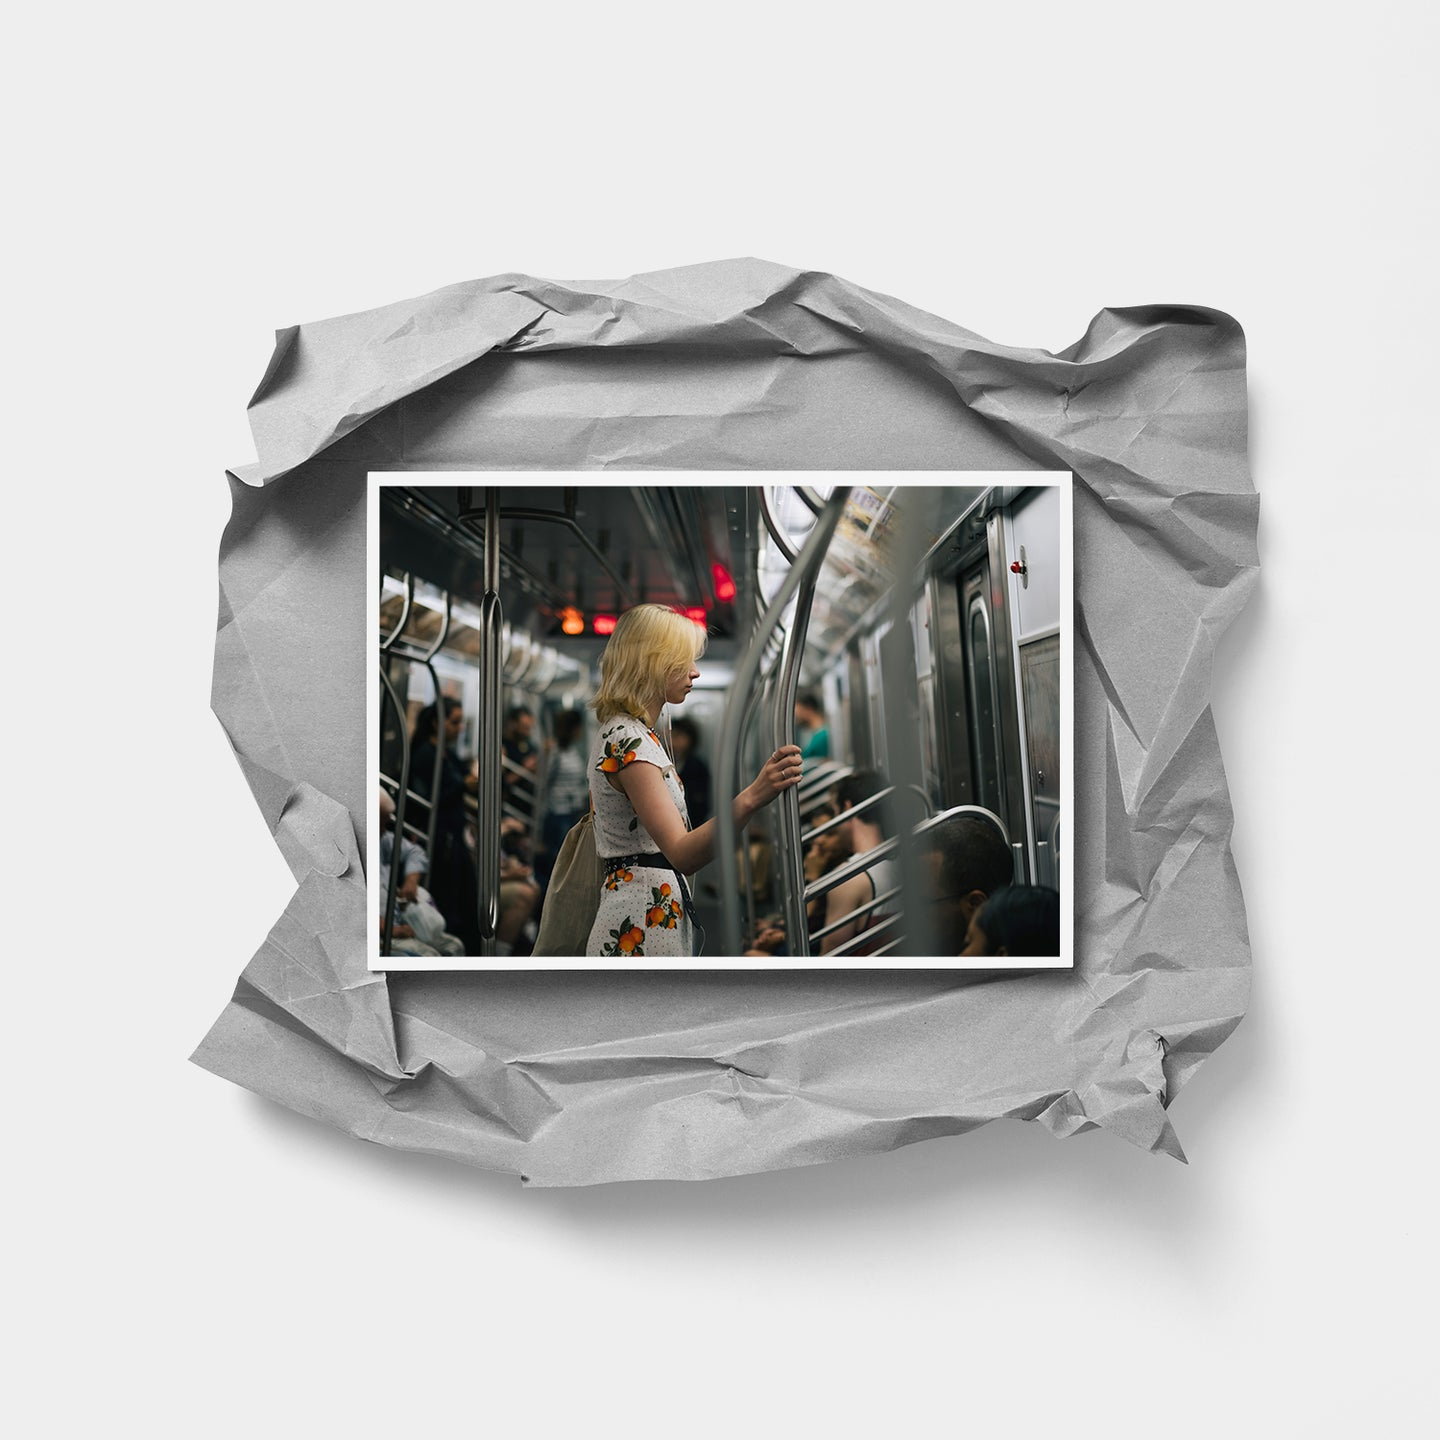 Photograph of a lady on the New York City subway.